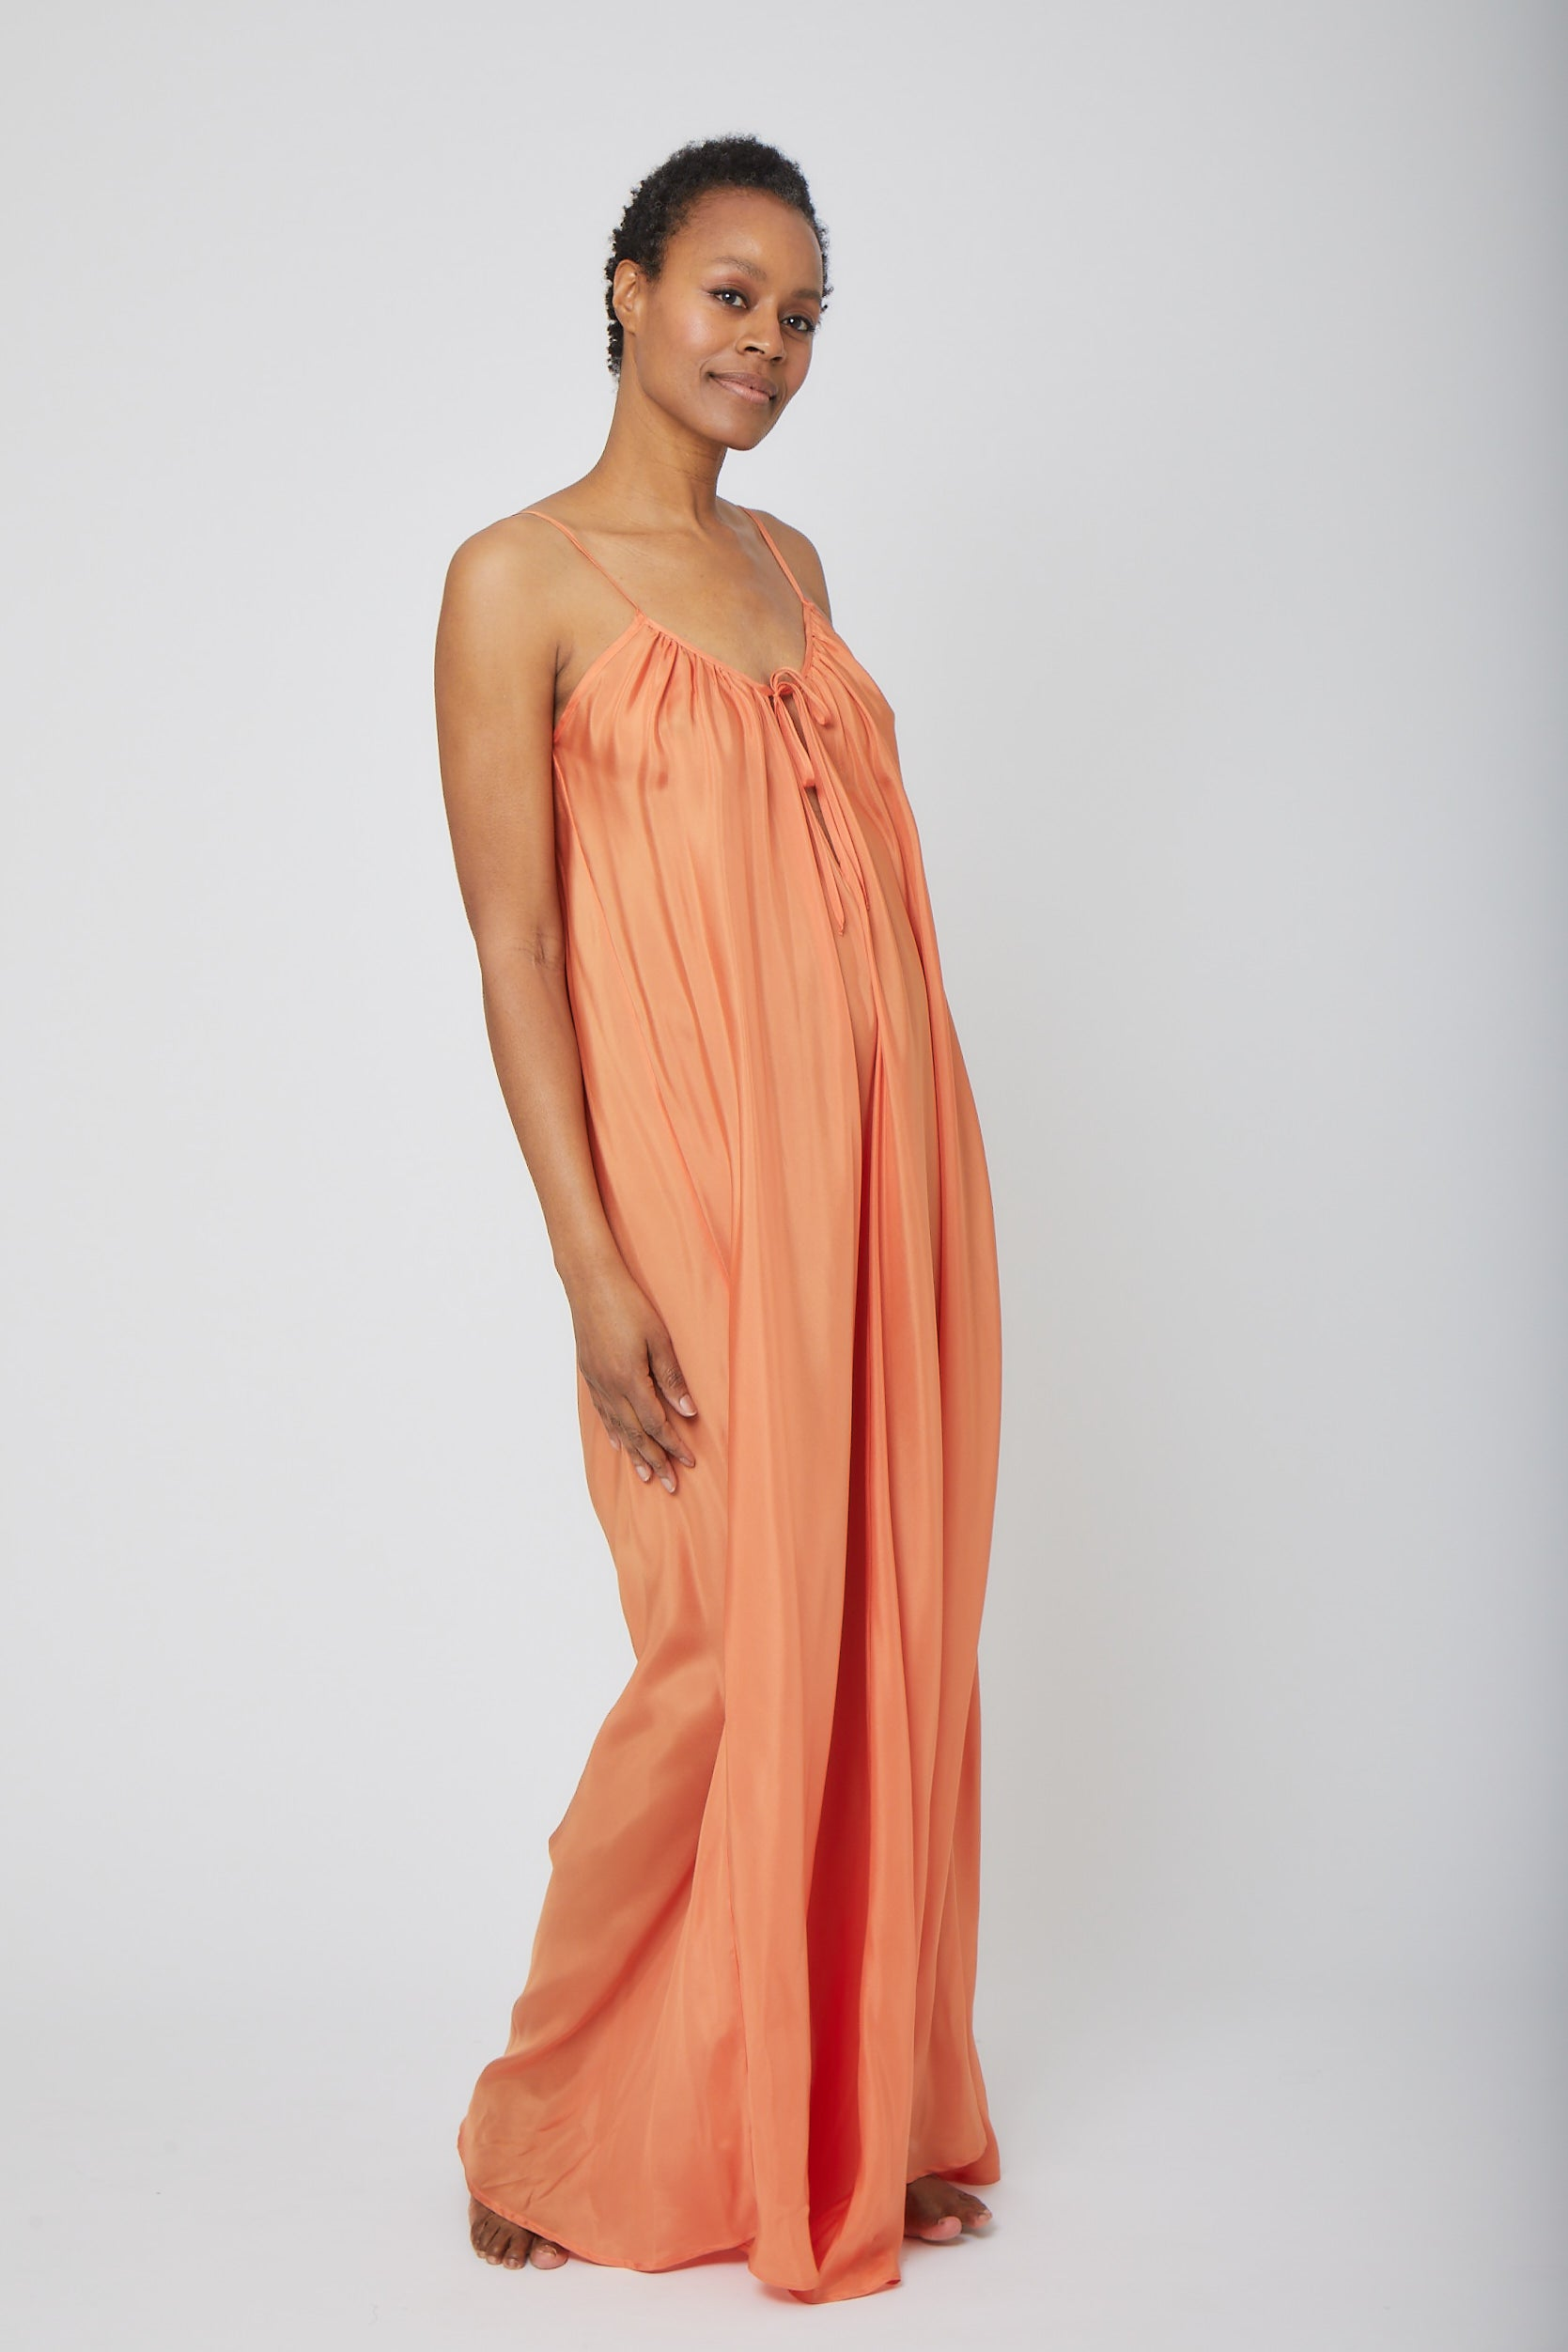 PLF_022620_24_PARIS_DRESS_TANGERINE_0540